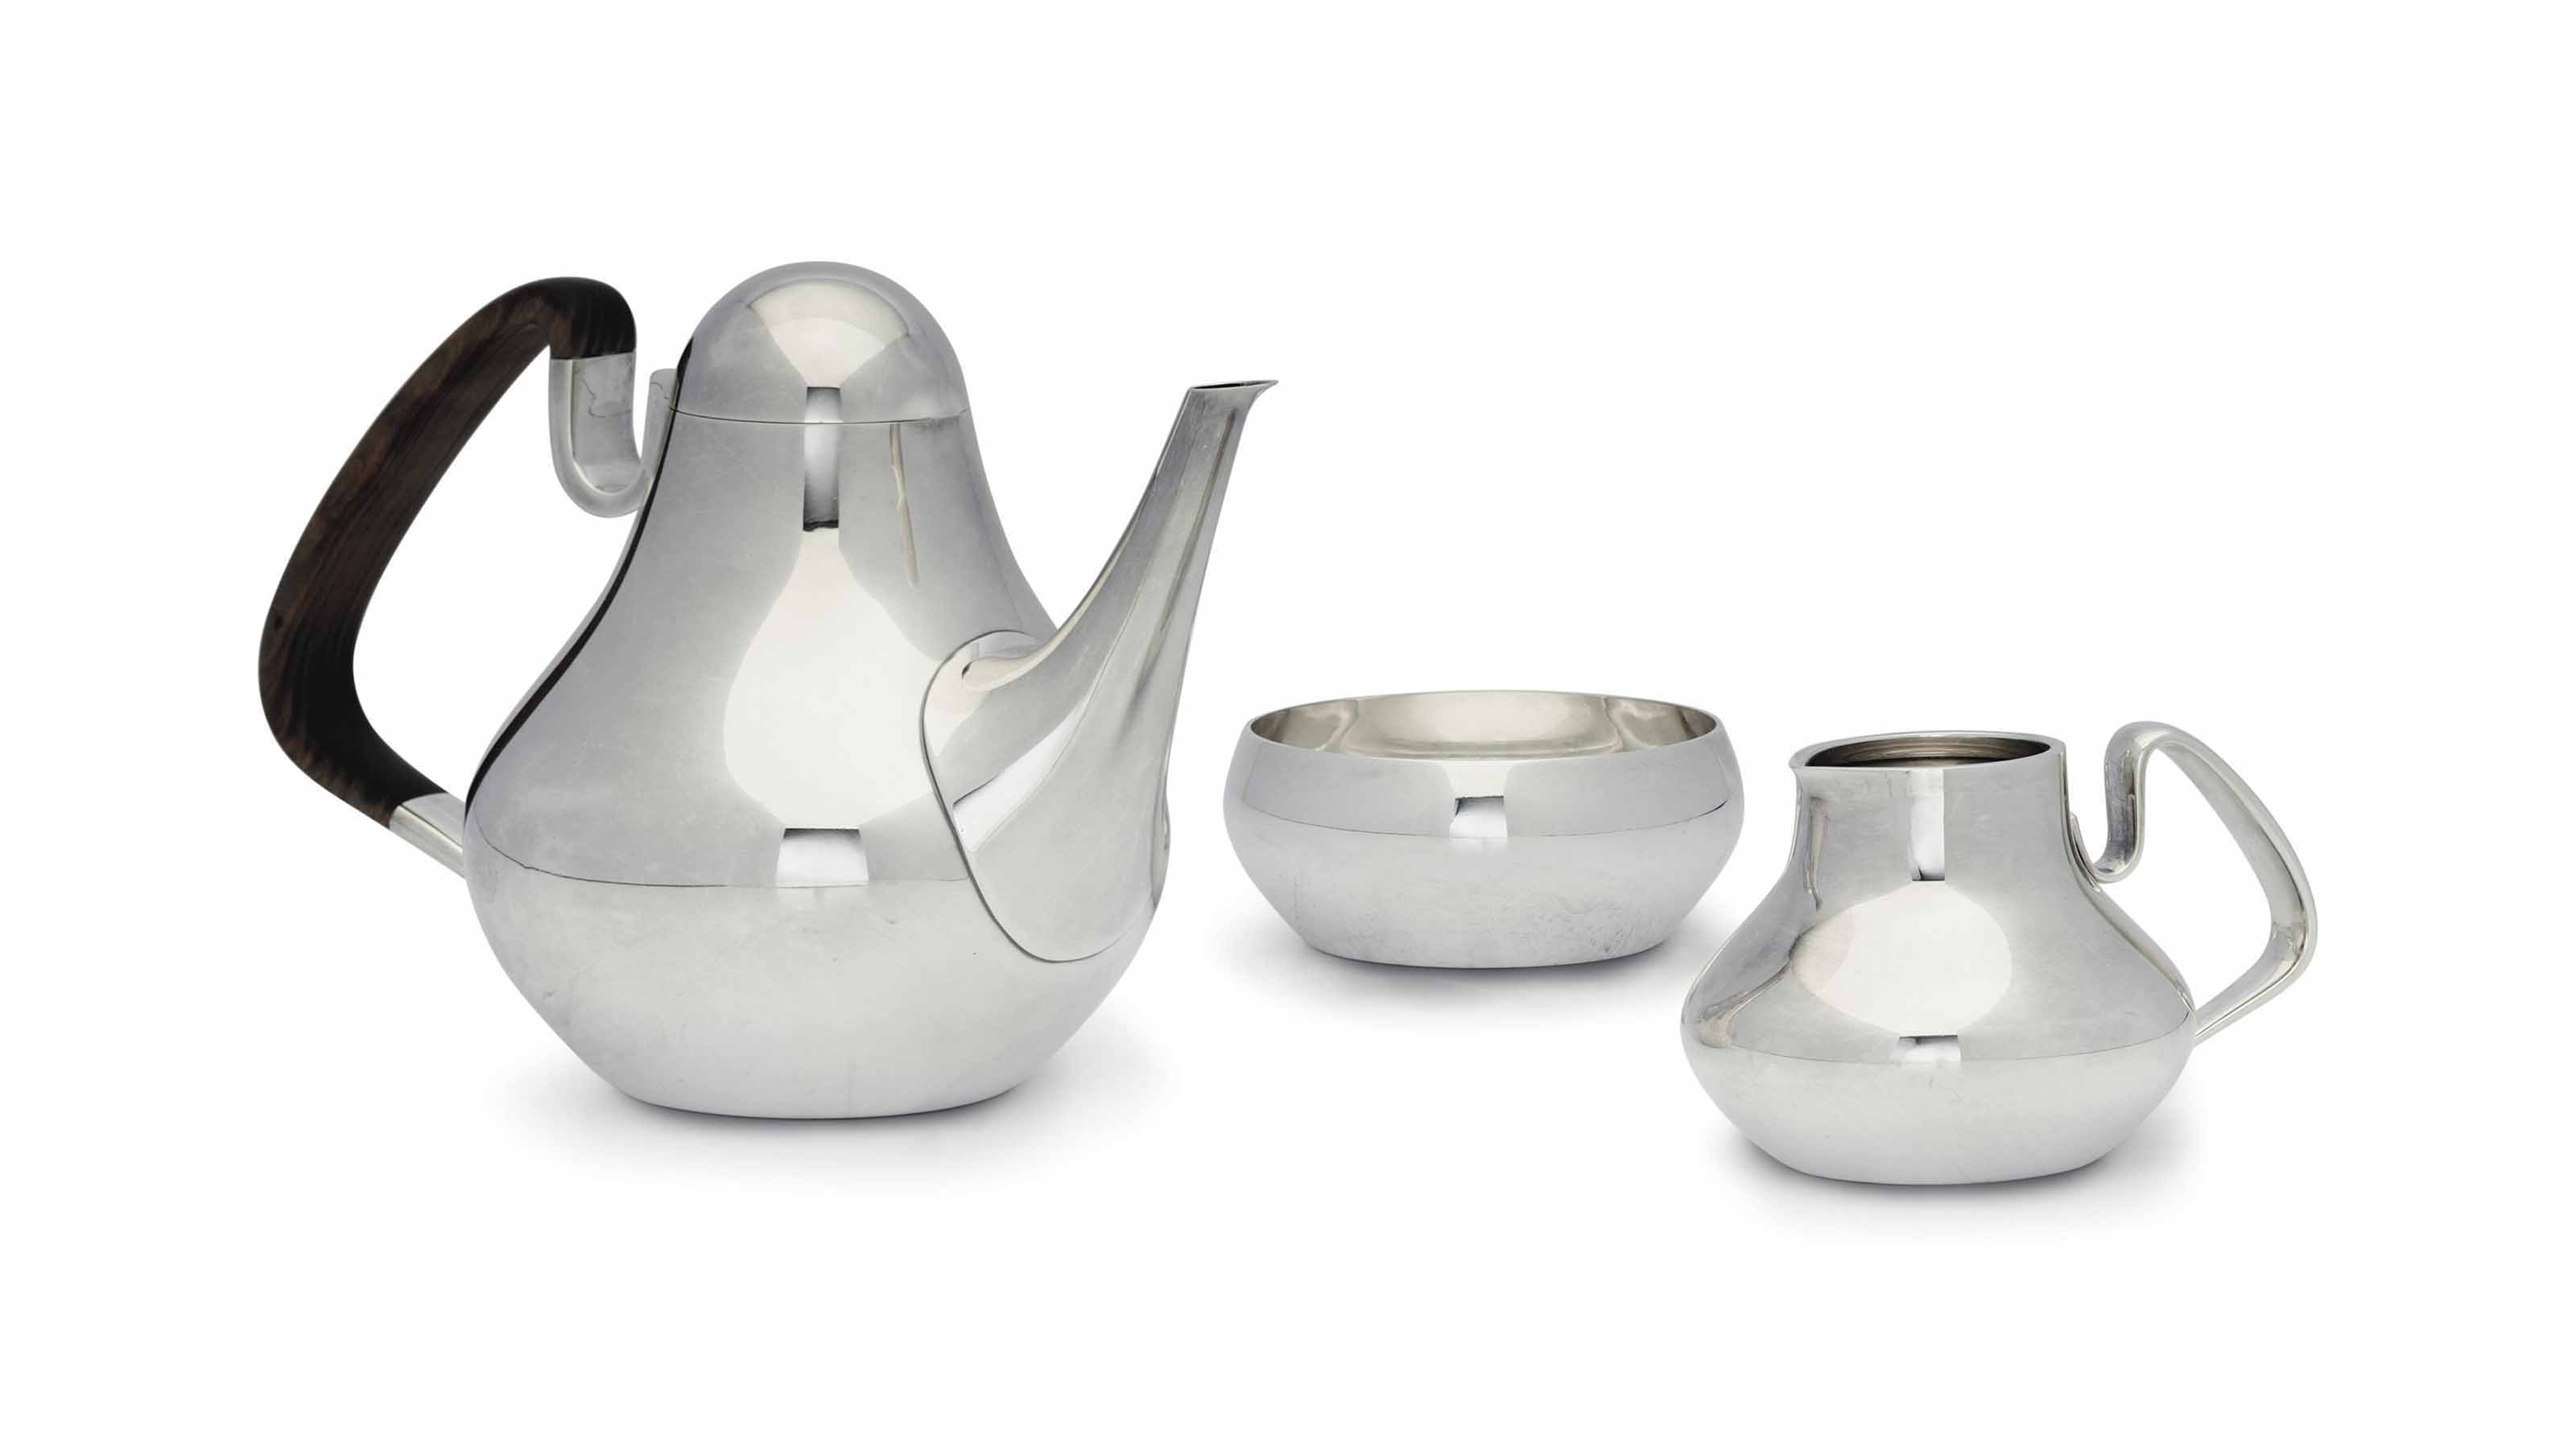 A DANISH SILVER THREE-PIECE TEA SERVICE, DESIGNED BY HENNING KOPPEL